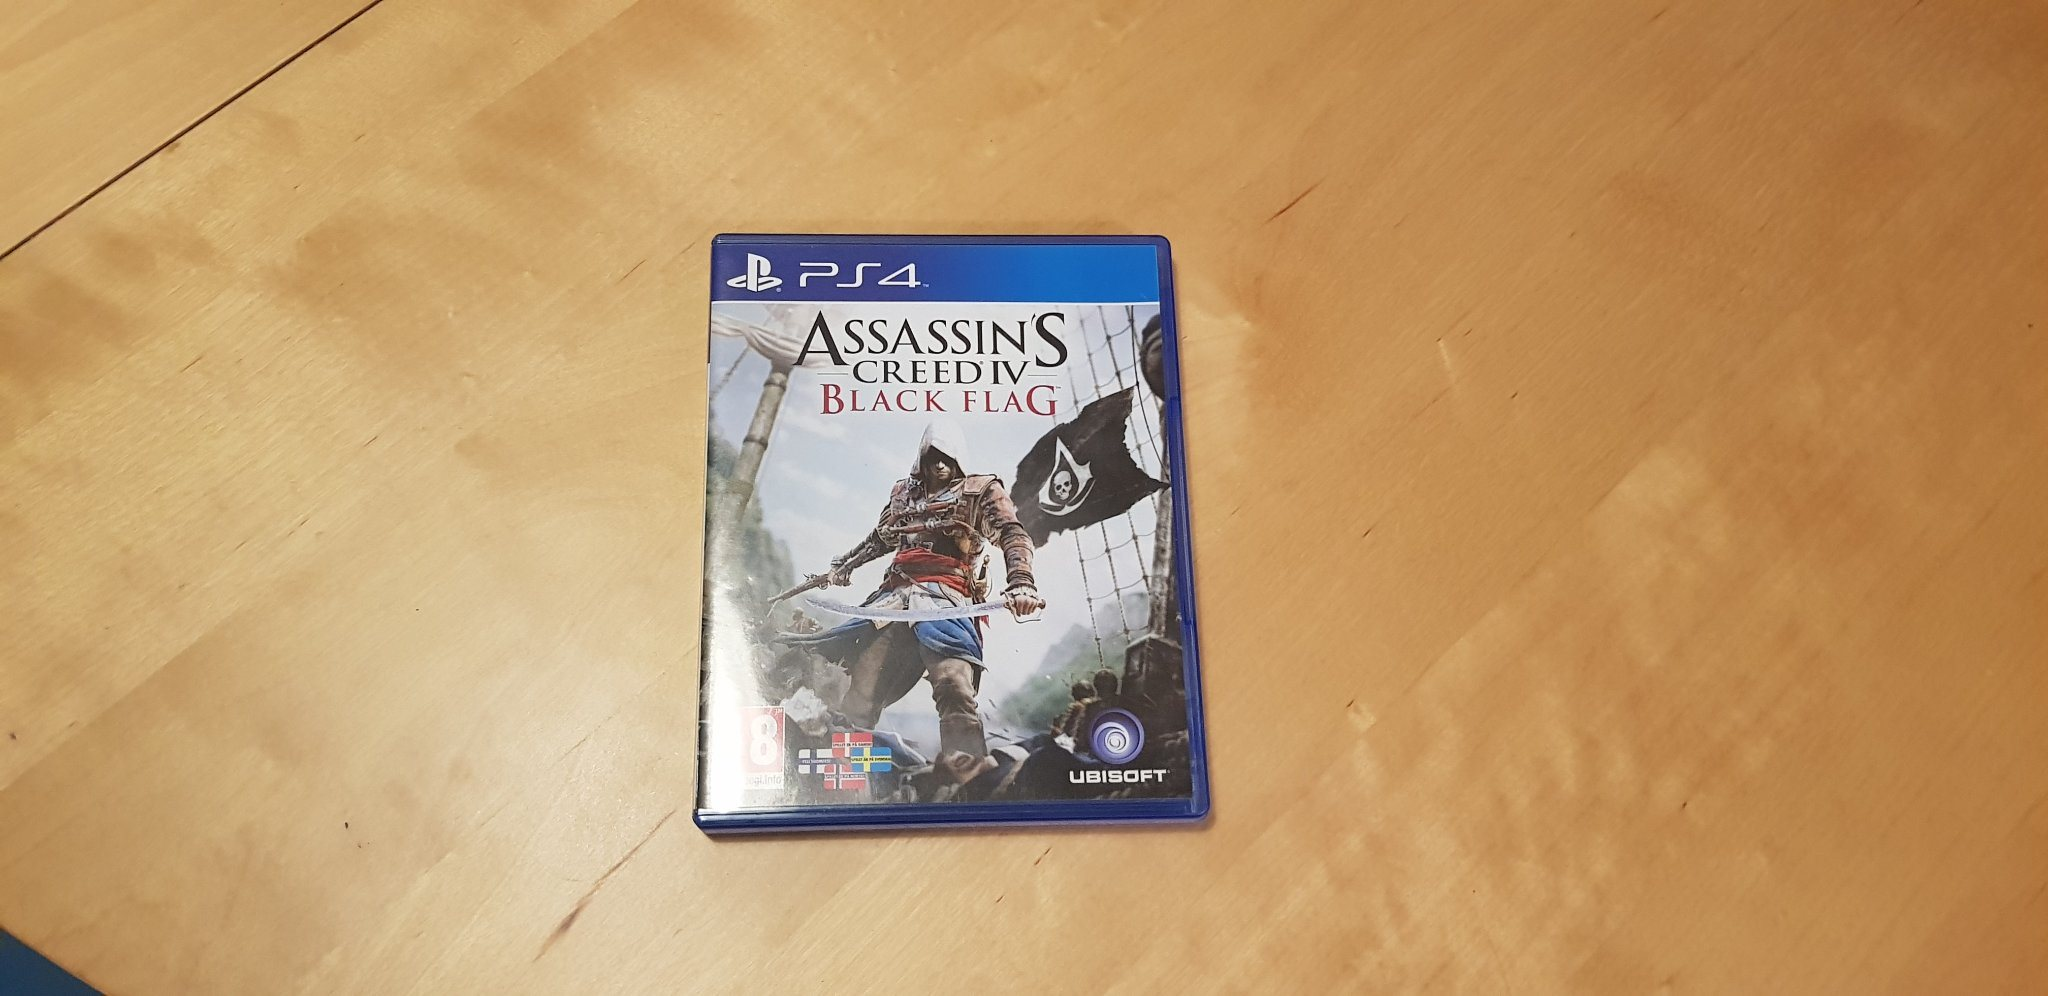 PS4 Assassin´s Creed IV Black Flag (Assassins Creed IV)